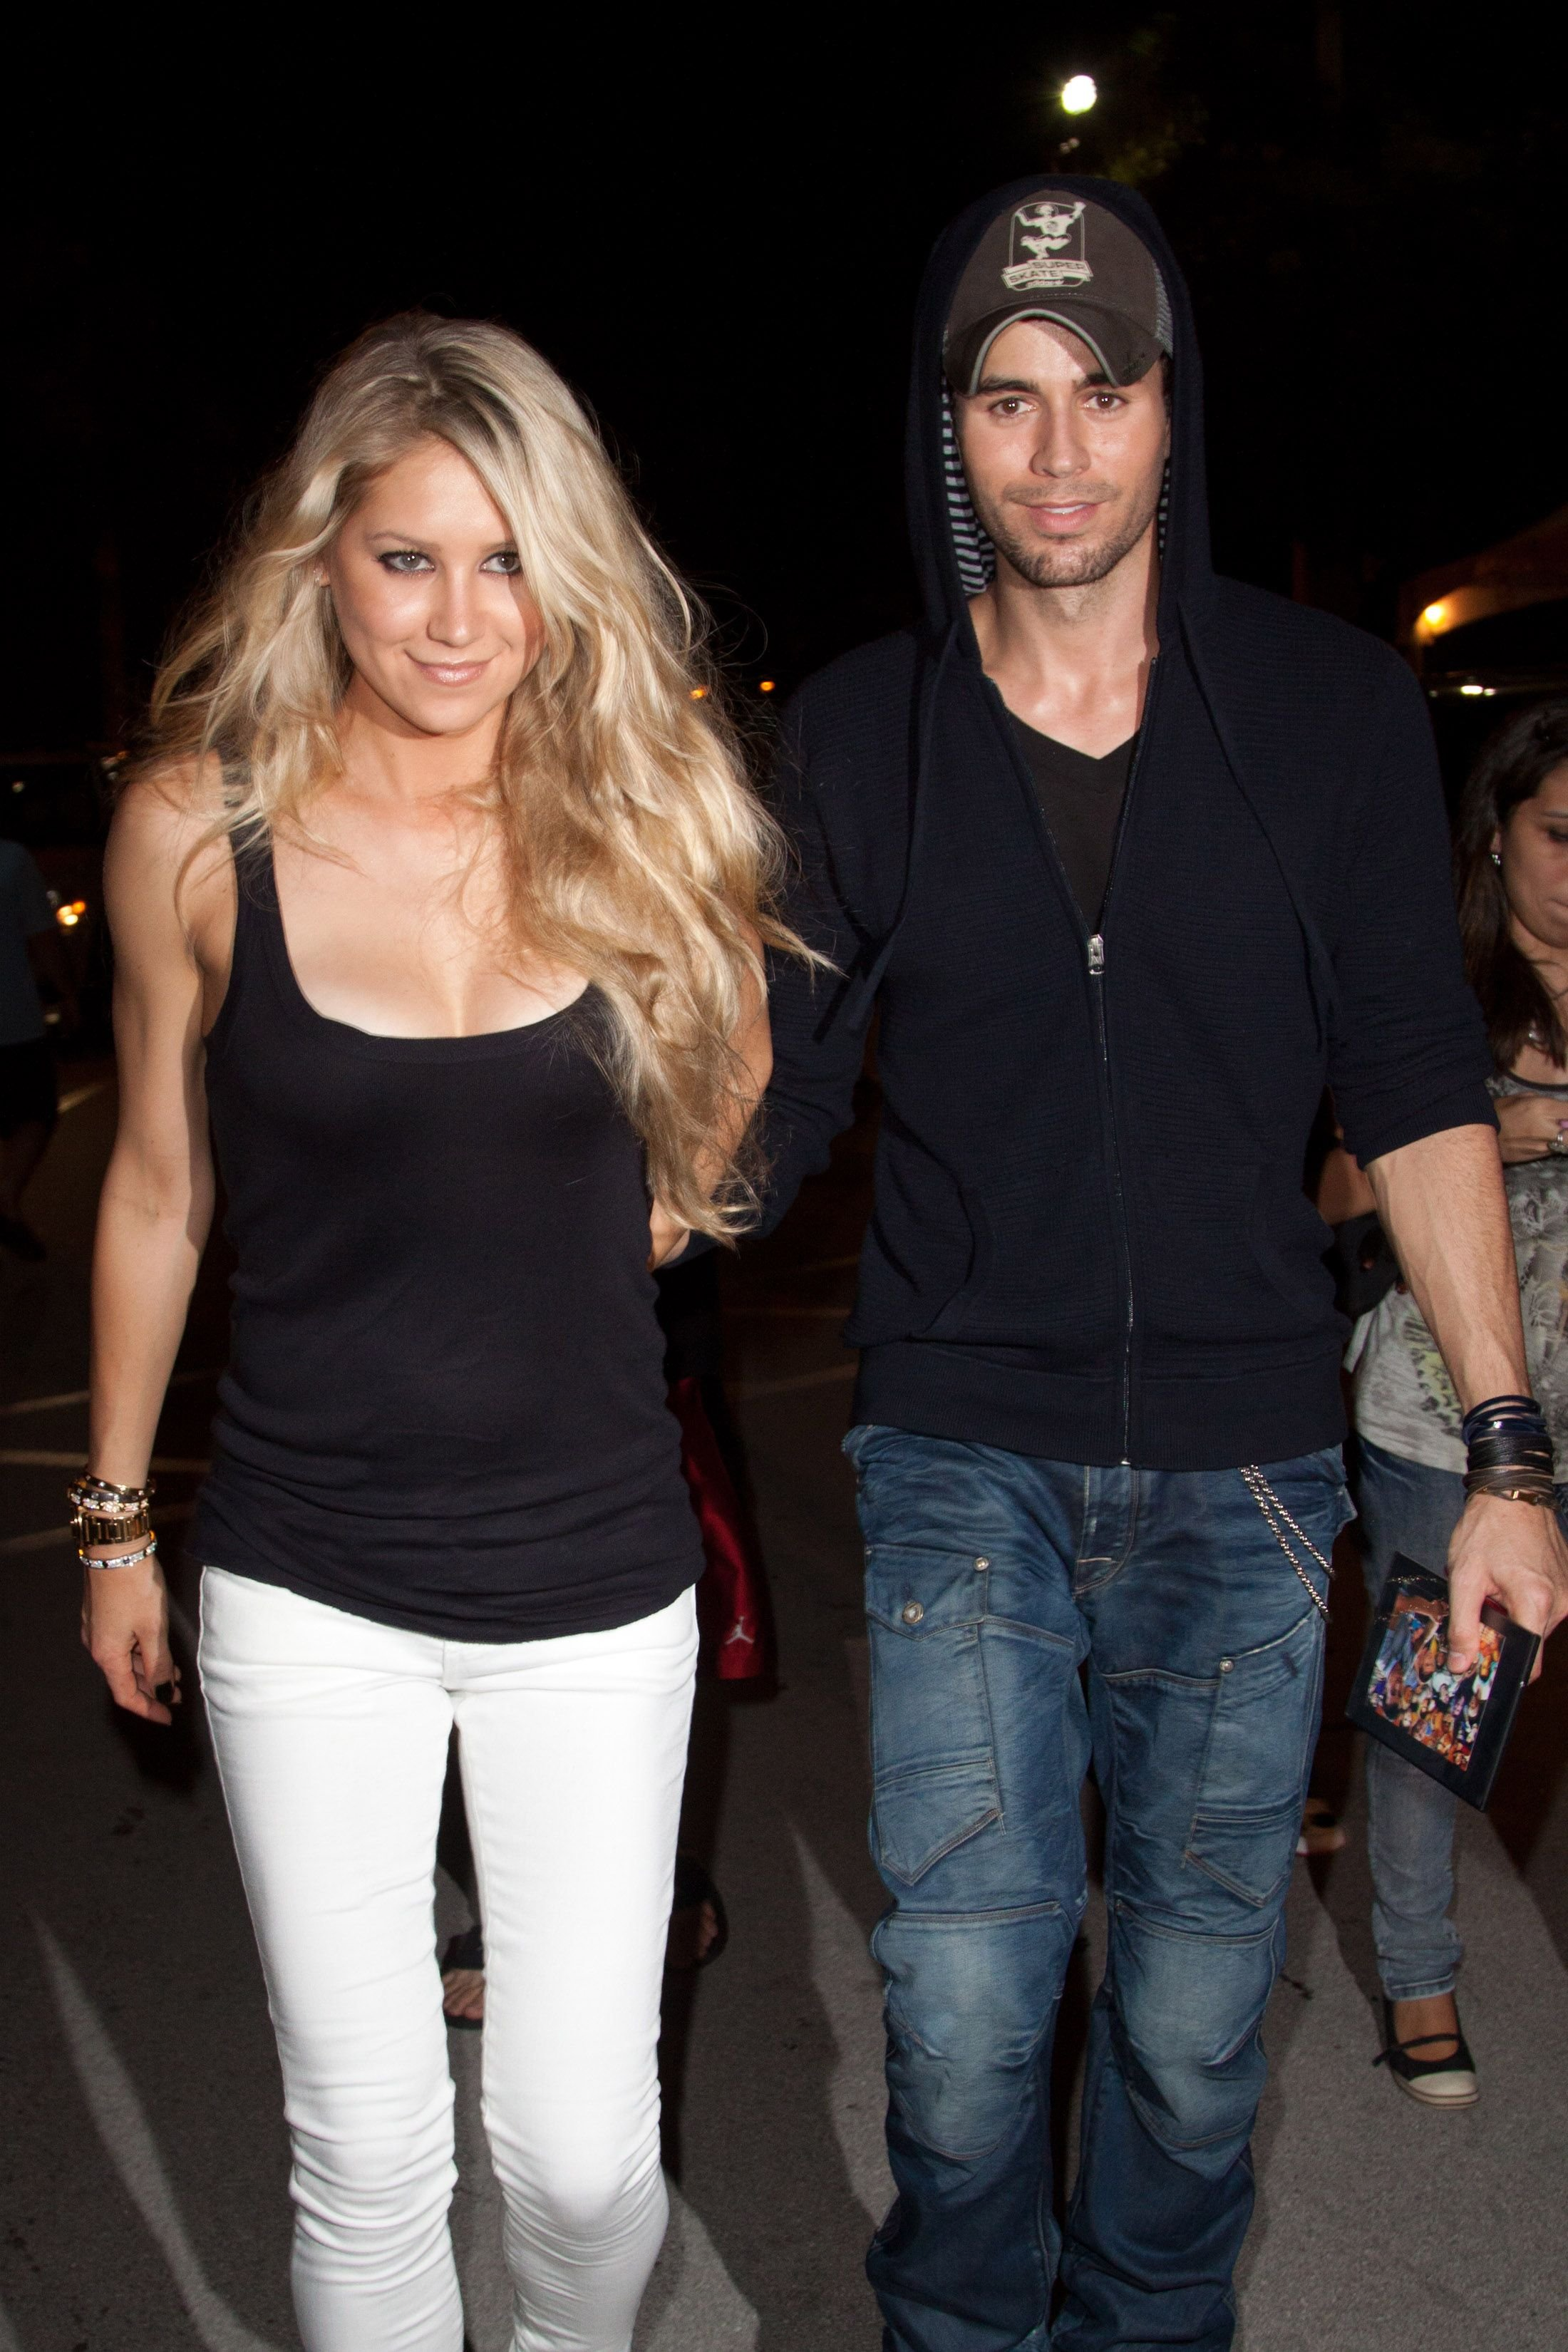 Anna Kournikova and Enrique Iglesias leave the Orange Carpet for the Miami Dolphins versus New York Jets game on September 26, 2010, in Miami, Florida | Photo: Getty Images